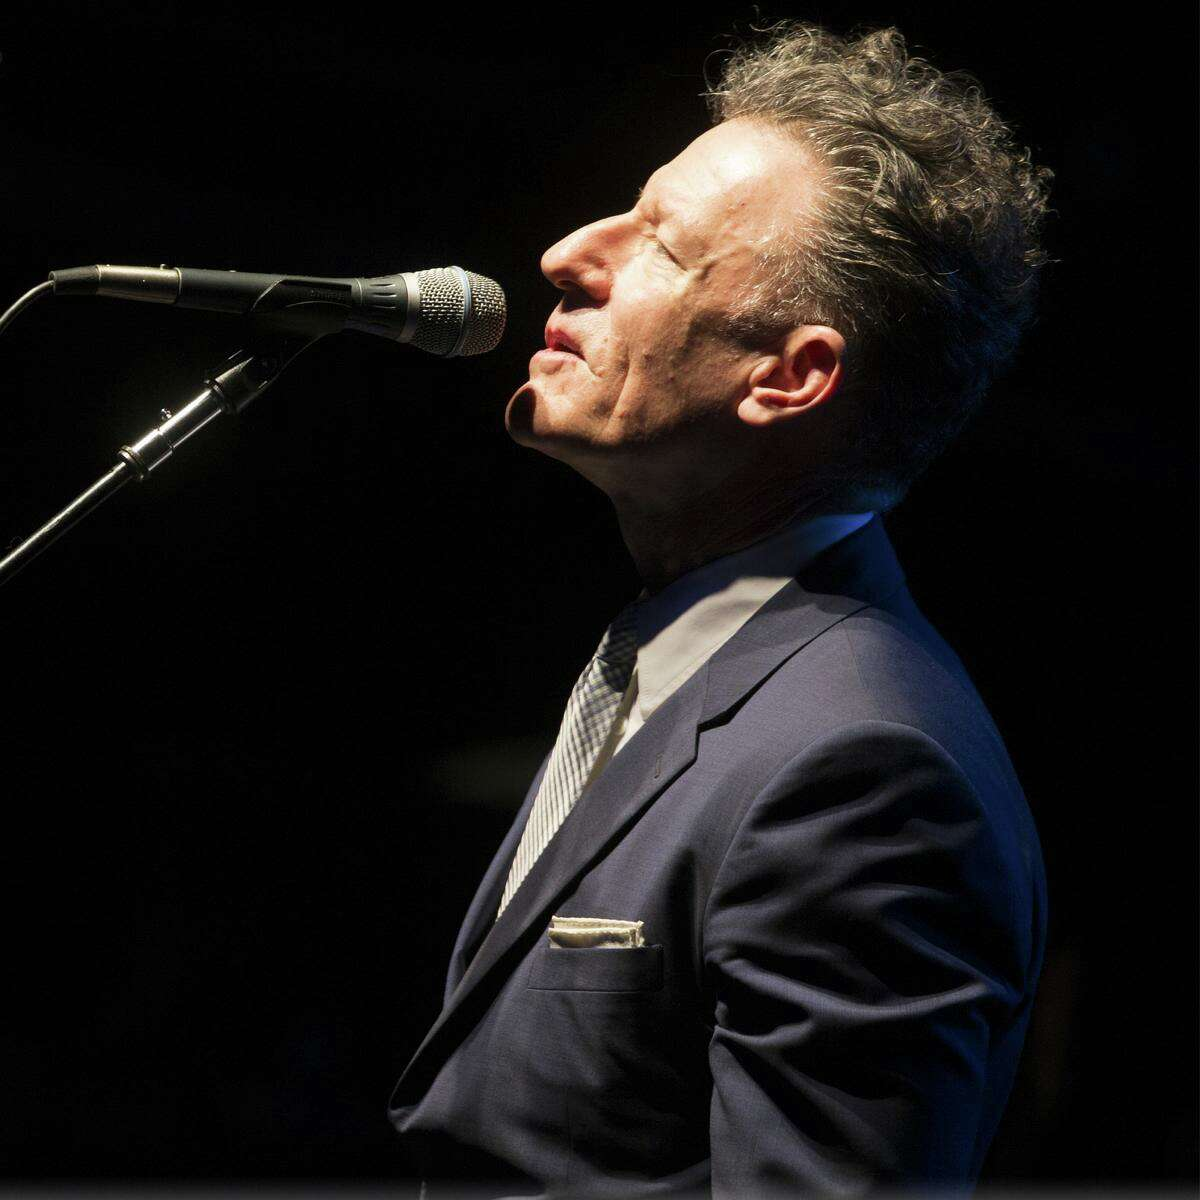 Lyle Lovett will perform with his Large Band at The Ridgefield Playhouse July 30 and 31.